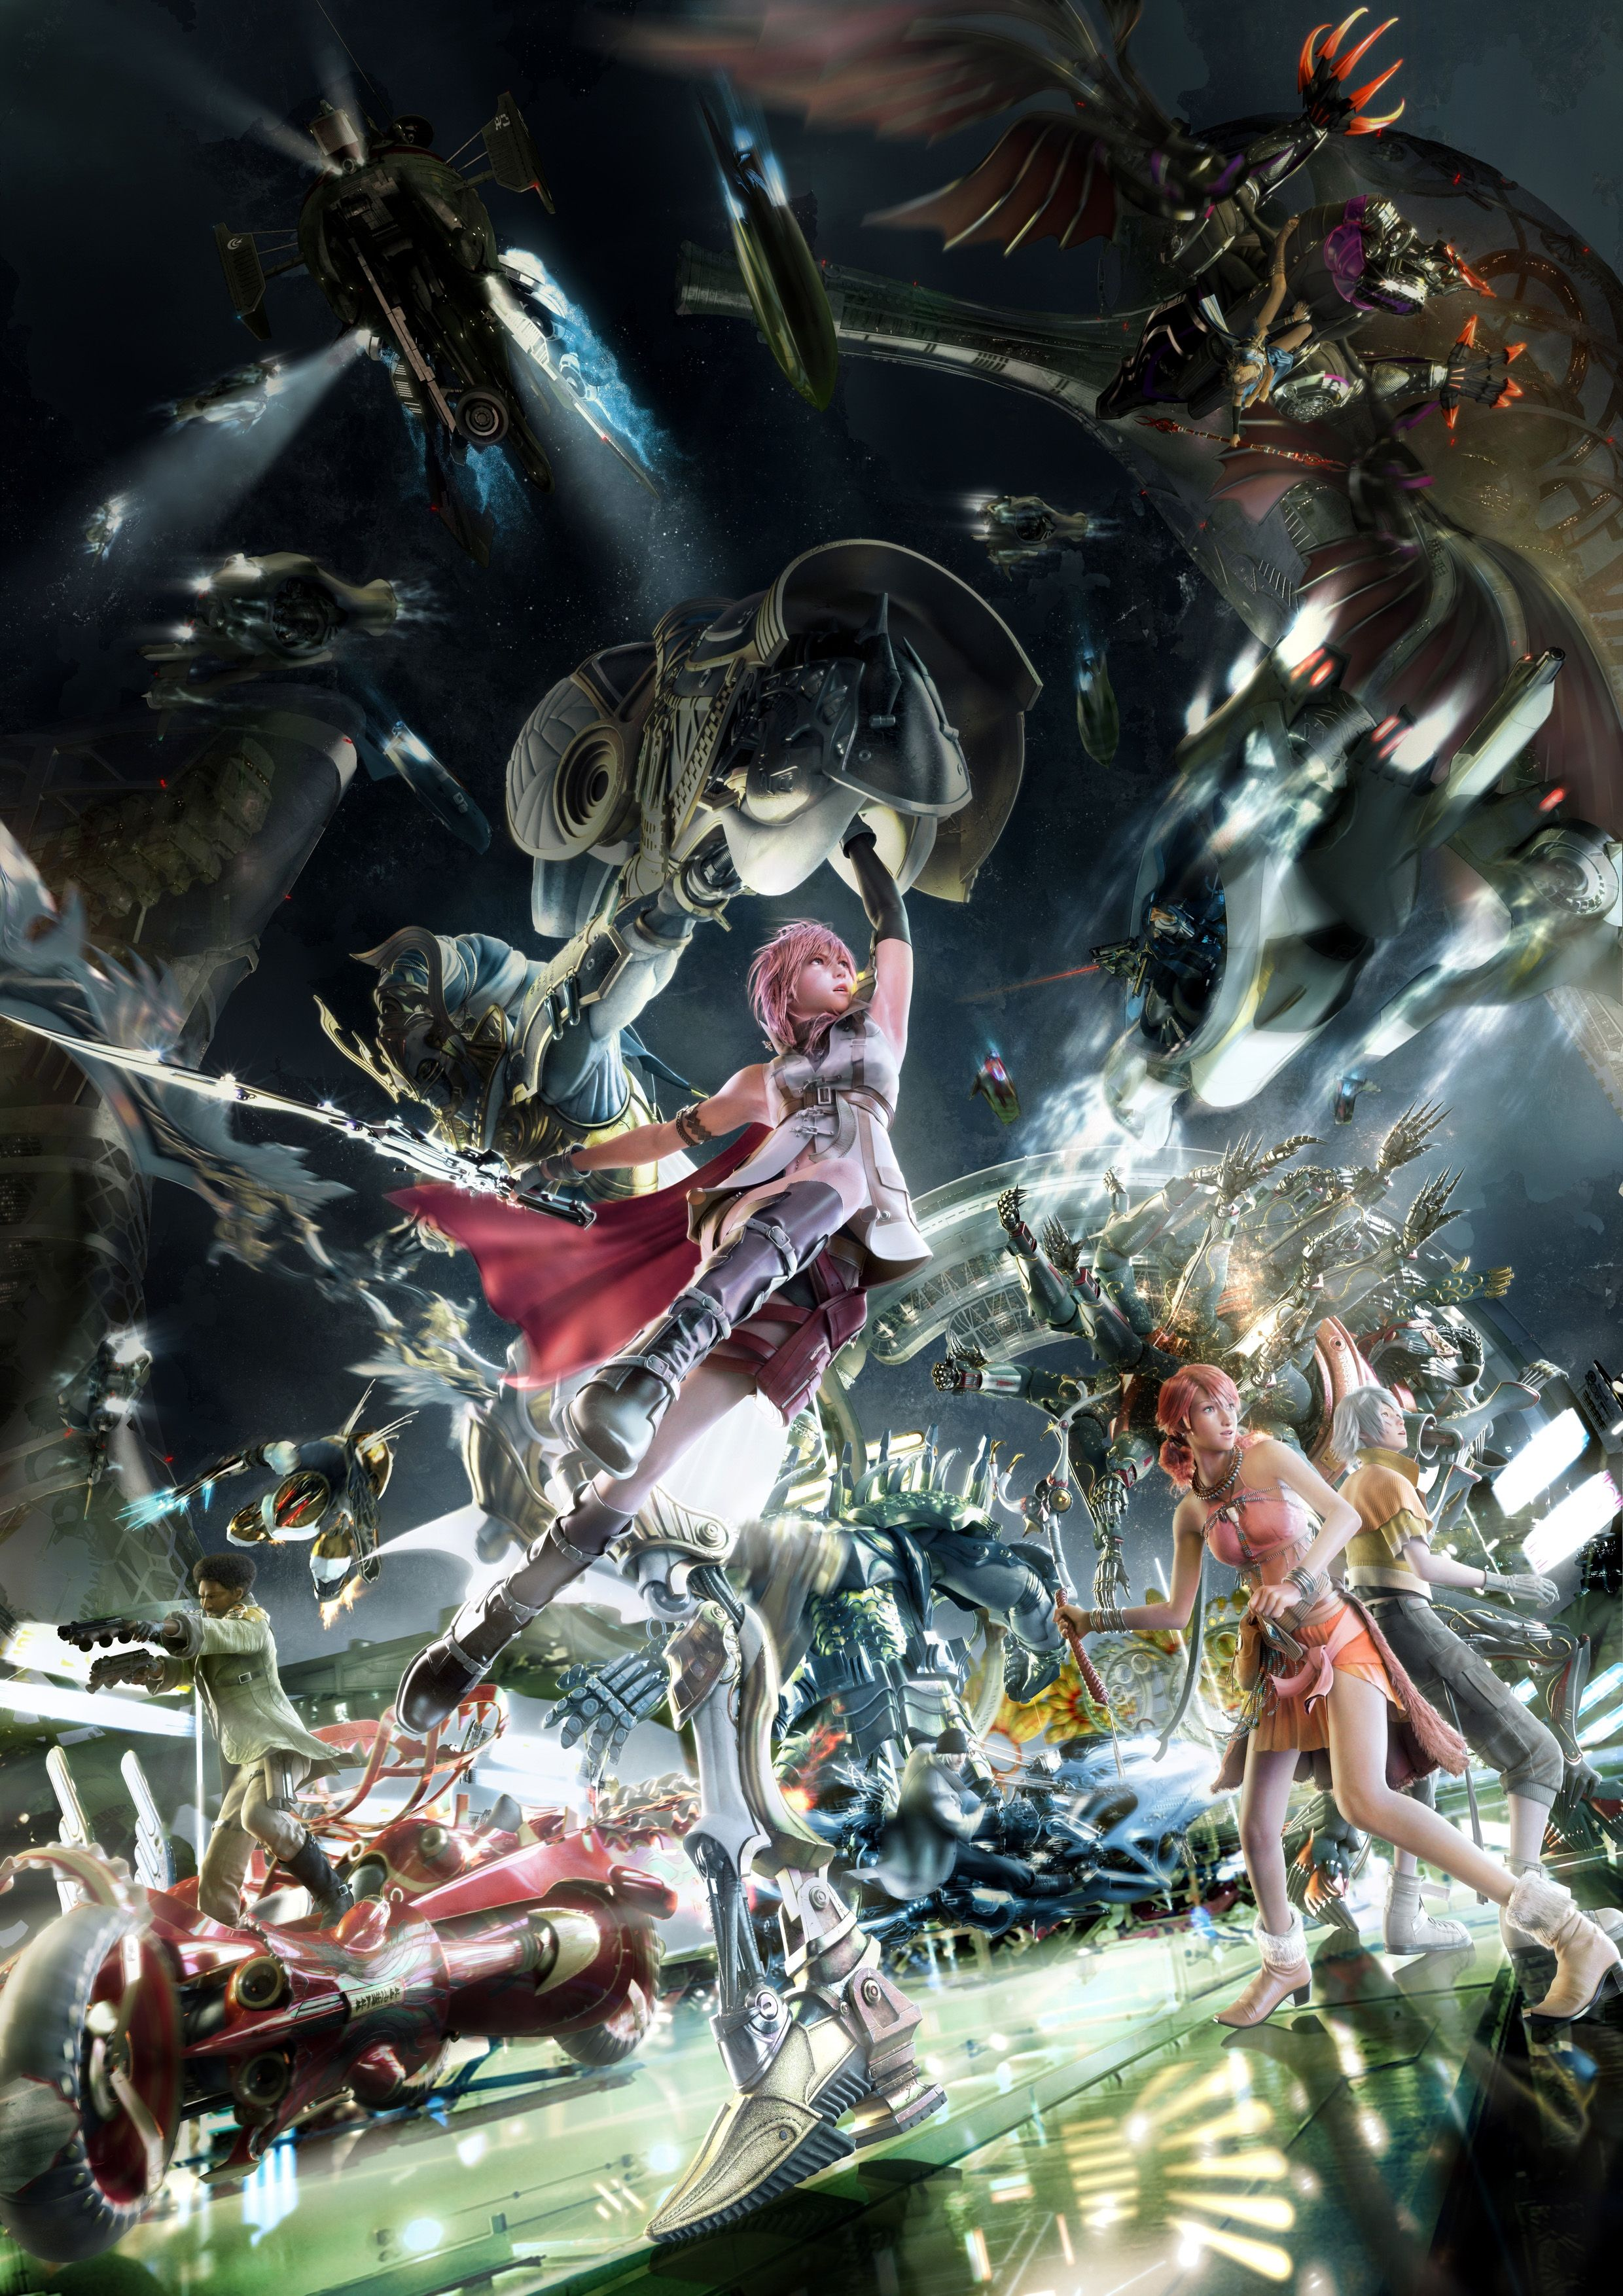 Promotional Artwork Of The Characters And Their Eidolons For The